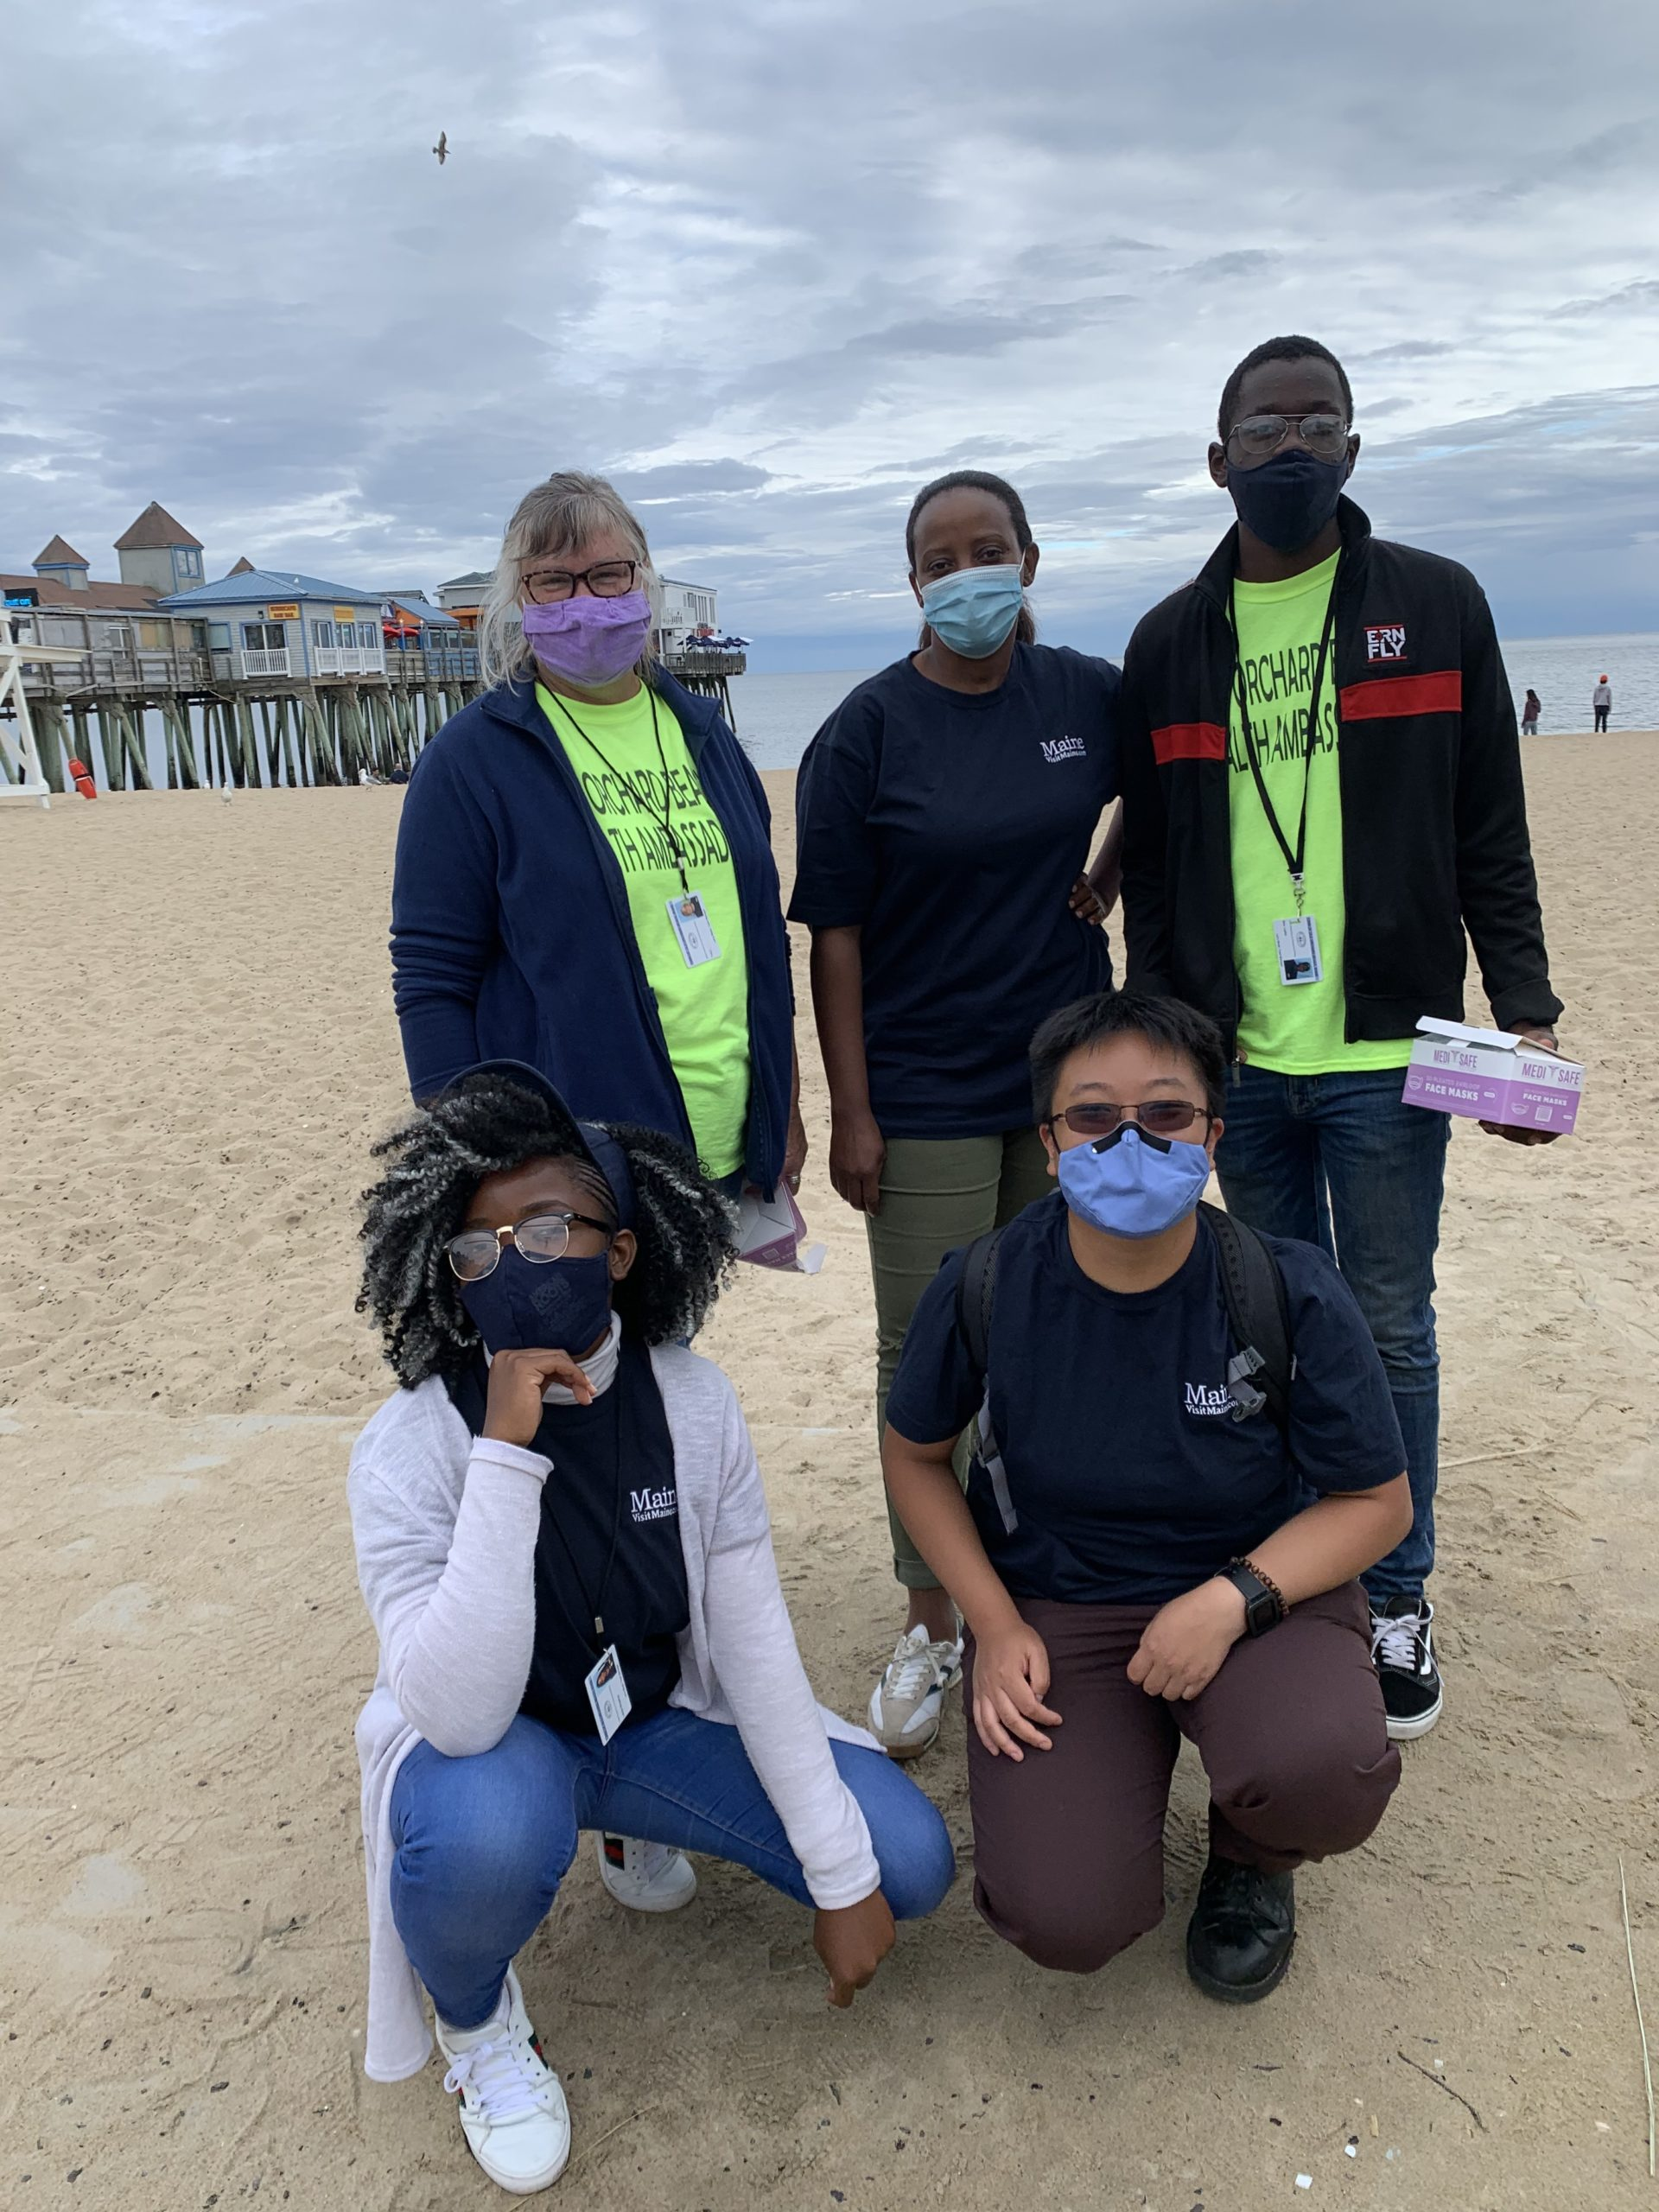 Keep Maine Healthy Ambassadors at Old Orchard Beach this week, masked up and ready to distribute masks and spread the word about COVID-19 safety. (Standing from left) Tracy Taylor, Paulo Paskazia, Beni Lapika; (kneeling from left) Lariska Mali Bengehya and Una Huang.